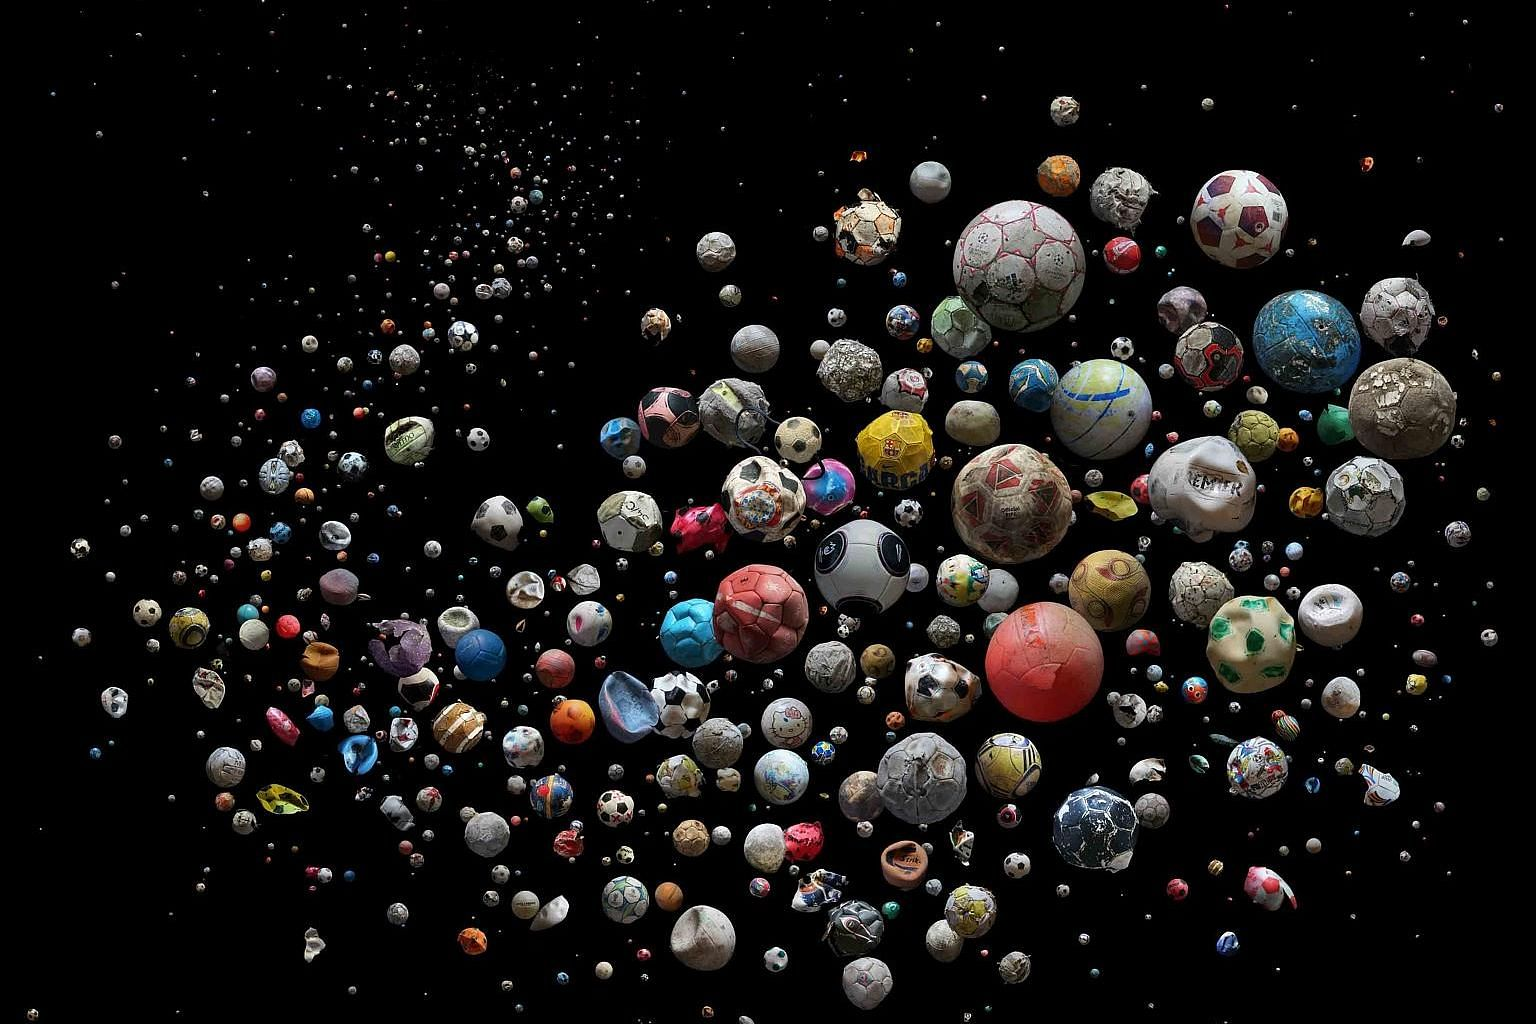 British photographer Mandy Barker's work features 633 soccer balls collected from 23 countries and islands in Europe, found on 104 beaches by 62 members of the public in just four months. A display showing the plastic rubbish collected on Singapore's